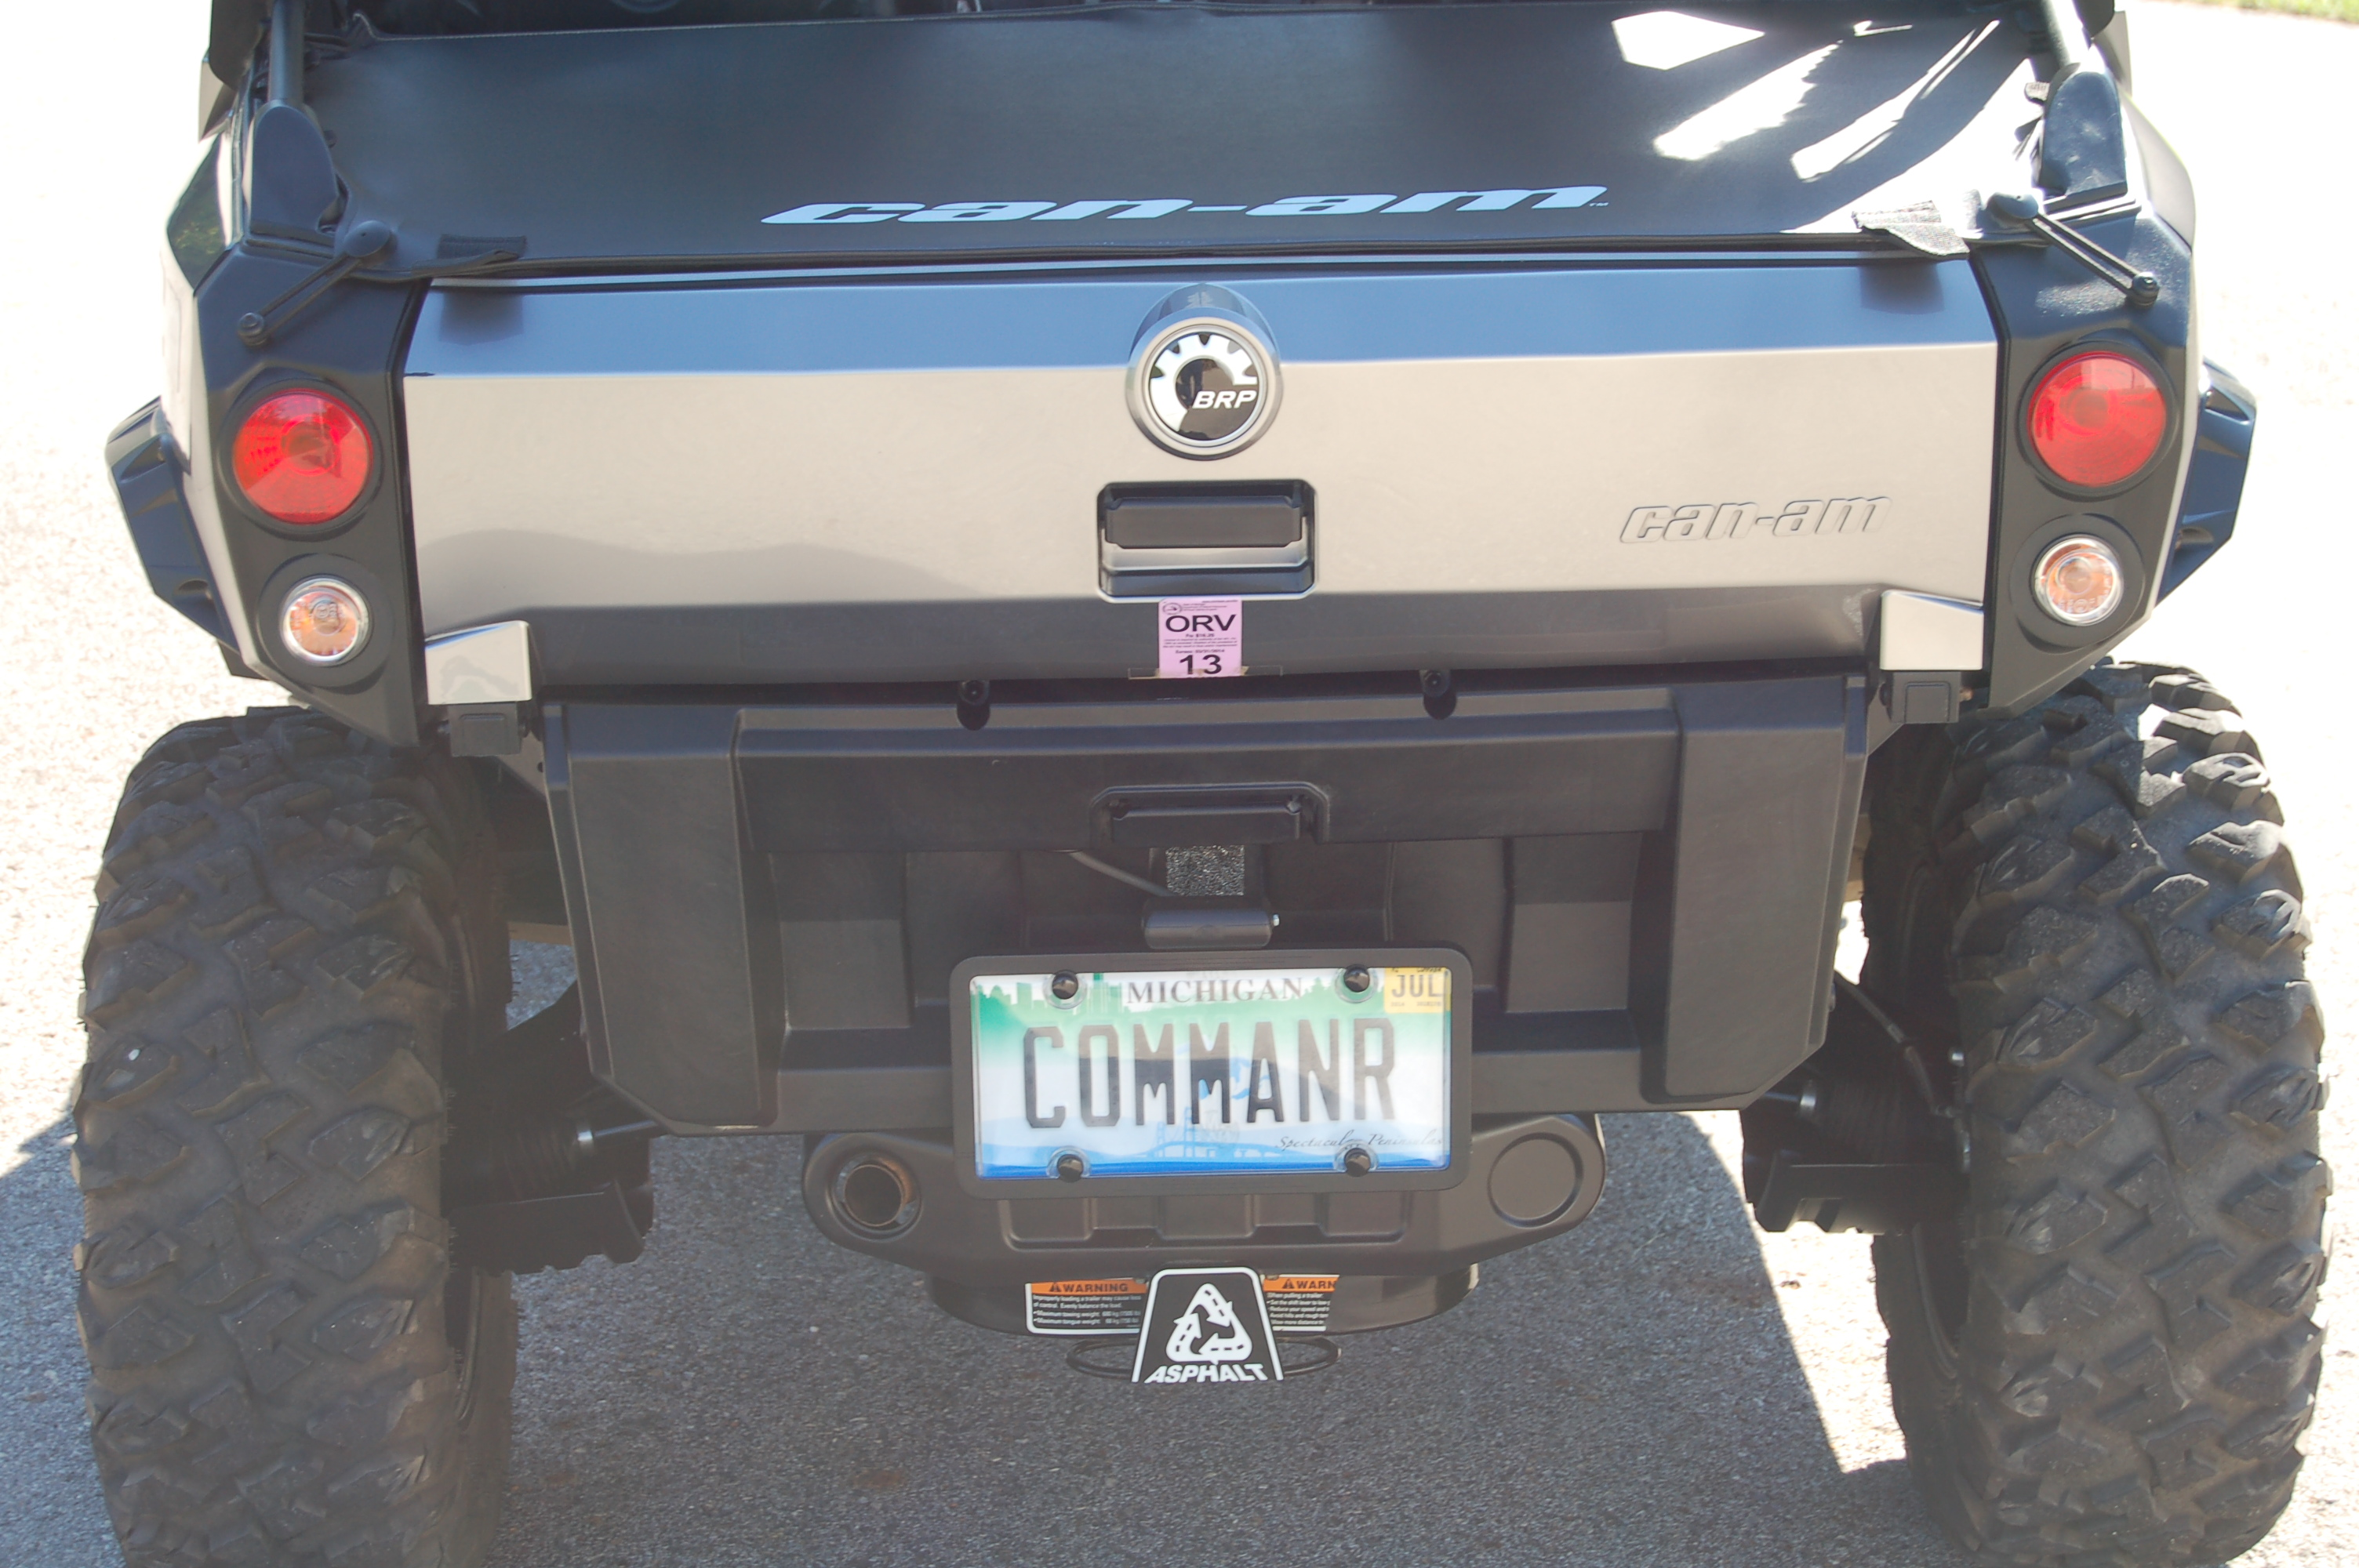 Don T Follow Canam Instructions For License Plate Bracket